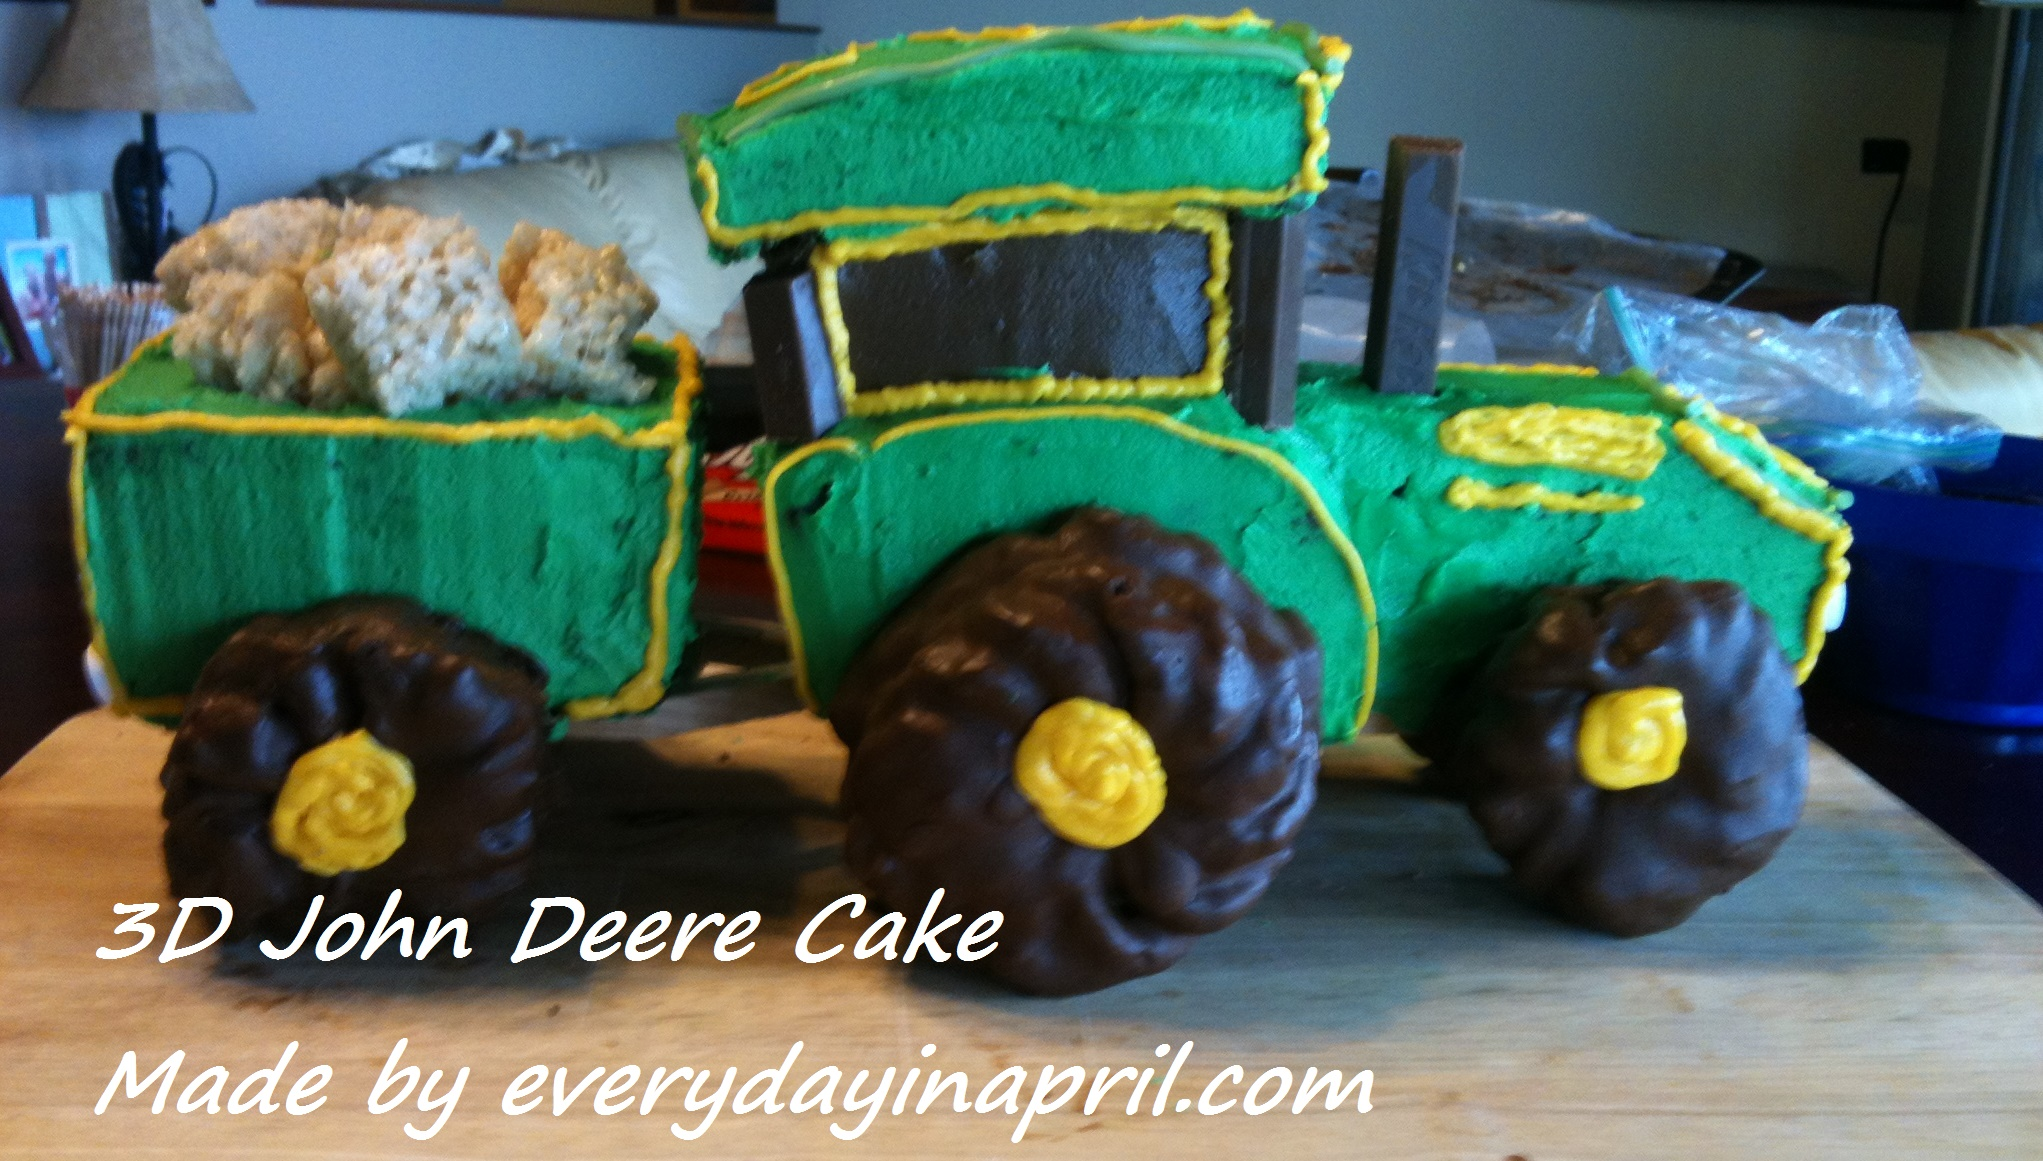 Take You For A Ride On My Big Green Tractor Cake Every Day In